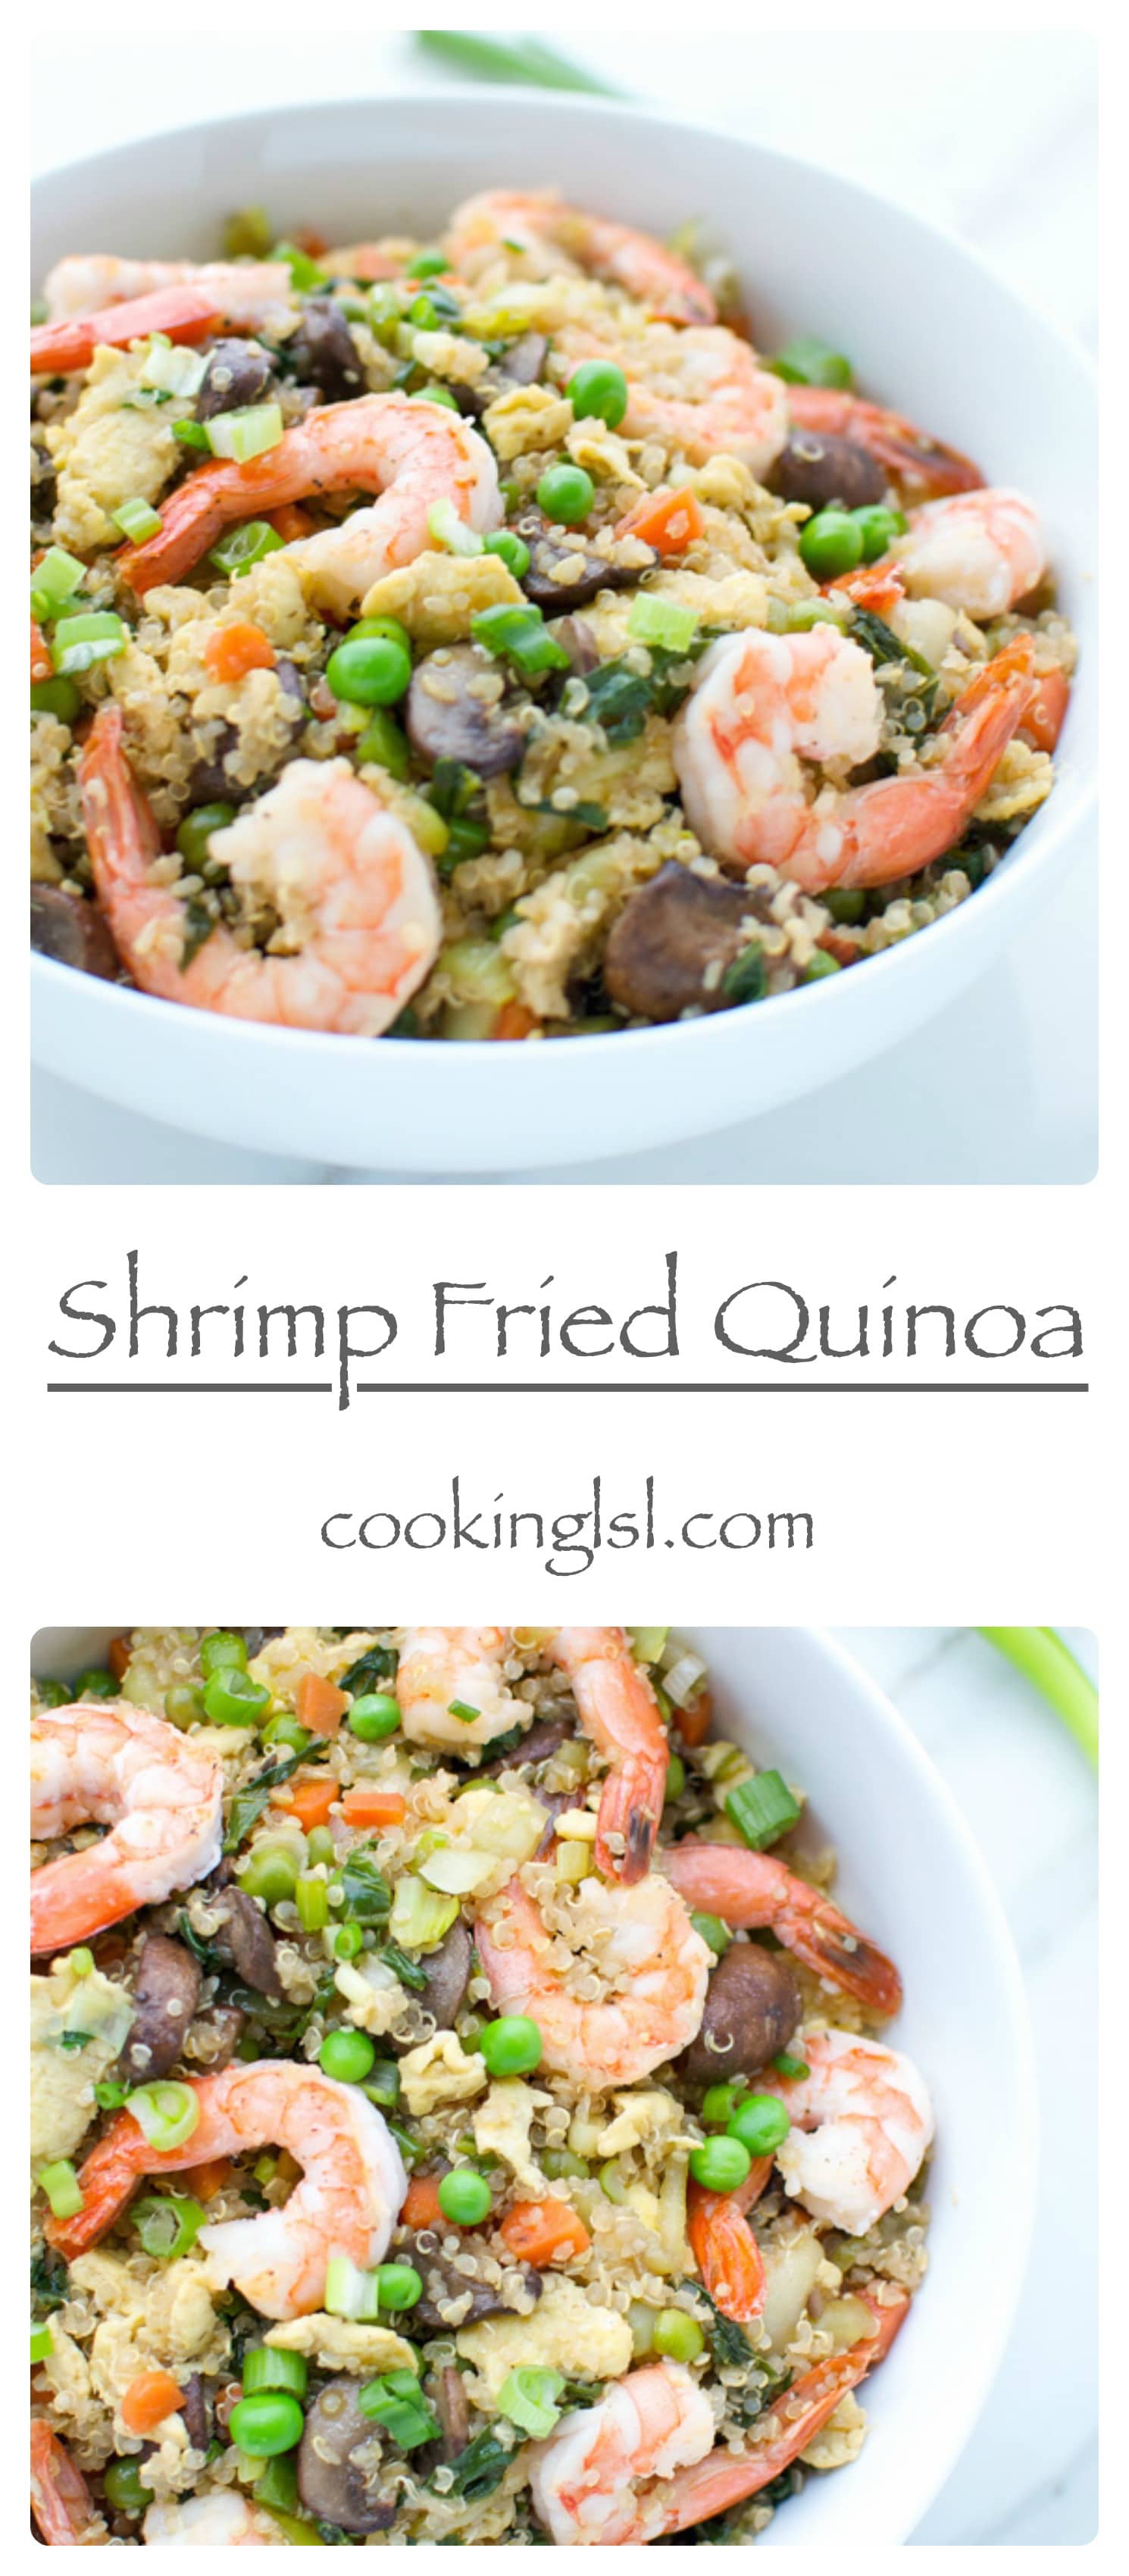 Shrimp Fried Quinoa - colorful dish in a white bowl, topped with green onions.